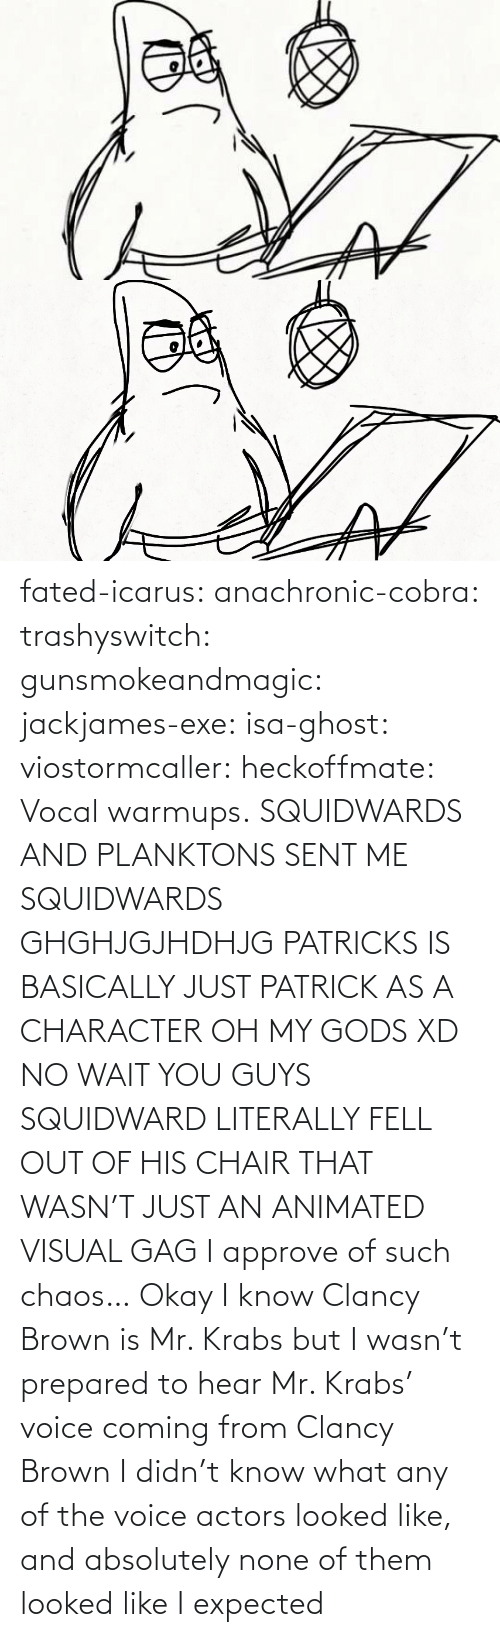 Squidward: fated-icarus:  anachronic-cobra: trashyswitch:  gunsmokeandmagic:  jackjames-exe:  isa-ghost:   viostormcaller:  heckoffmate: Vocal warmups. SQUIDWARDS AND PLANKTONS SENT ME  SQUIDWARDS GHGHJGJHDHJG   PATRICKS IS BASICALLY JUST PATRICK AS A CHARACTER OH MY GODS XD   NO WAIT YOU GUYS SQUIDWARD LITERALLY FELL OUT OF HIS CHAIR THAT WASN'T JUST AN ANIMATED VISUAL GAG    I approve of such chaos…    Okay I know Clancy Brown is Mr. Krabs but I wasn't prepared to hear Mr. Krabs' voice coming from Clancy Brown    I didn't know what any of the voice actors looked like, and absolutely none of them looked like I expected